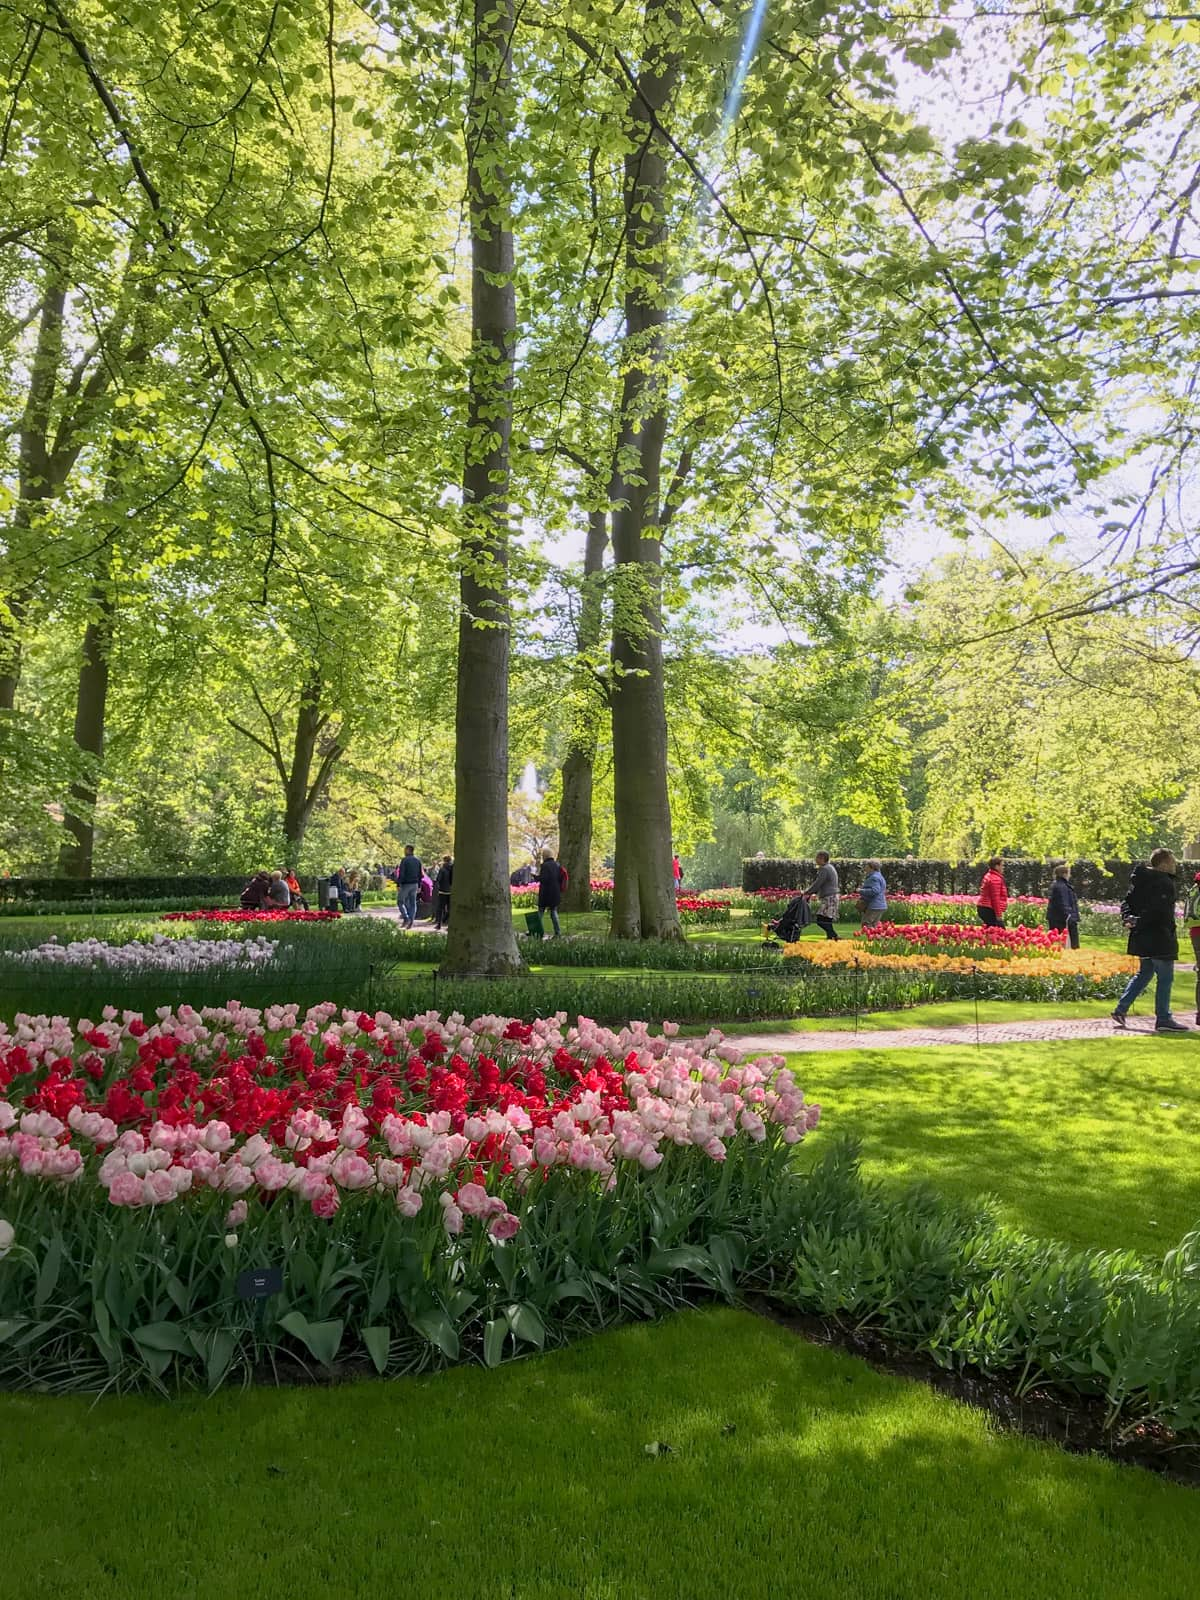 A garden with green lawns and paved walkways. There are a number of pink and red tulips planted, and tall trees with long trunks in the background.